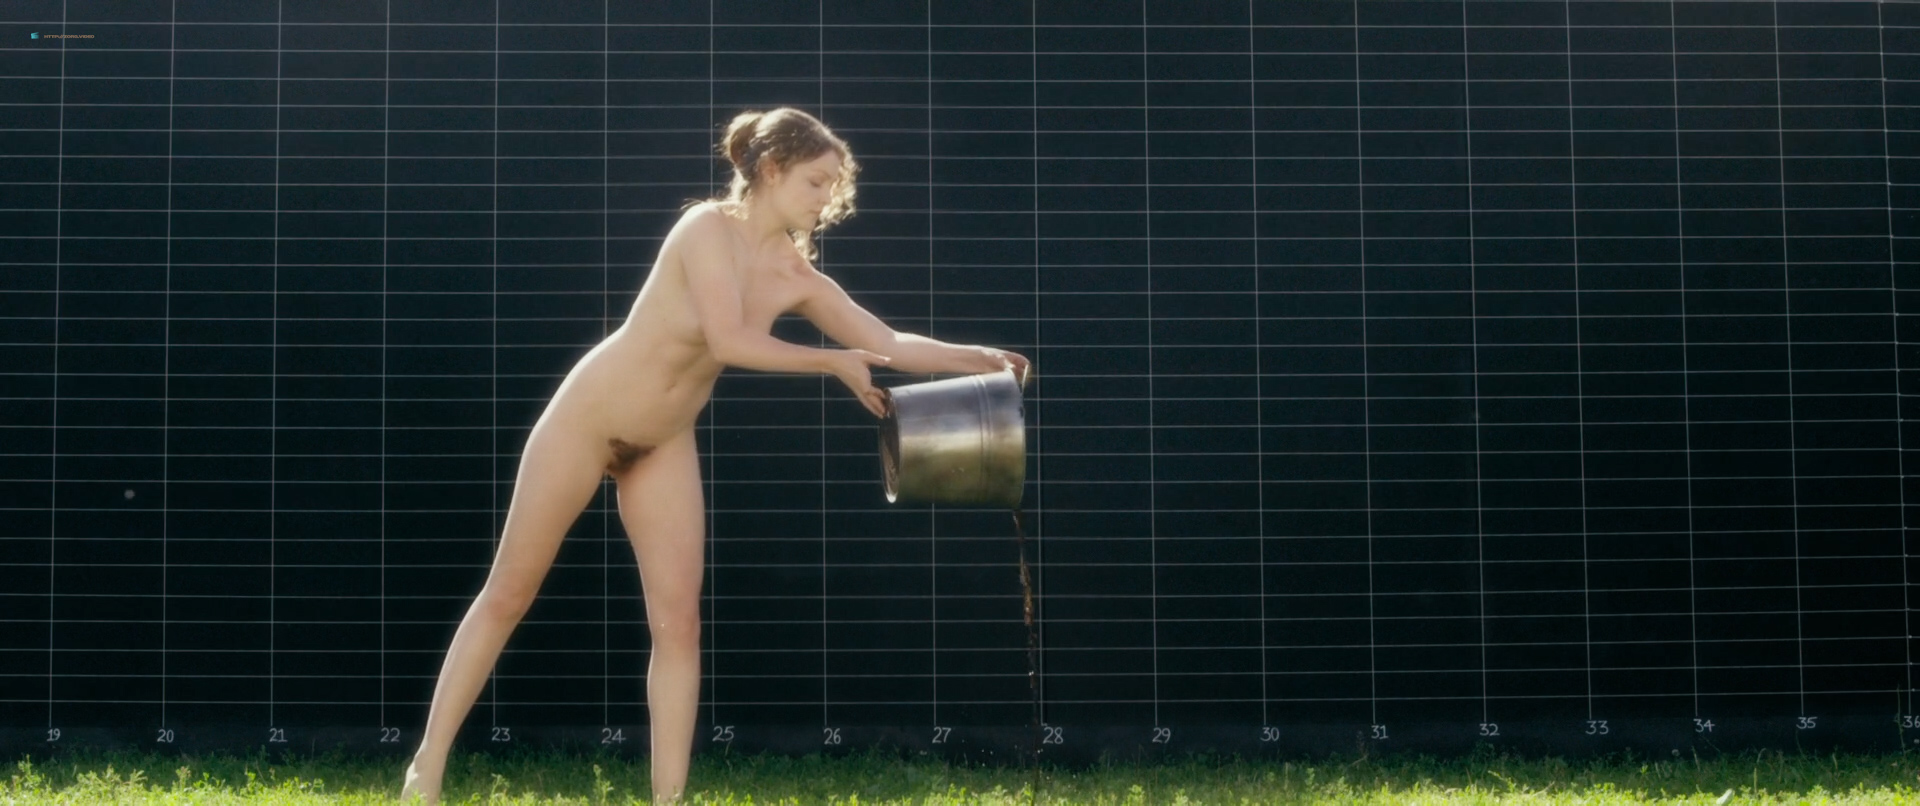 Jodi Balfour nude full frontal Meisha Lowe nude other's nude bush, butt and boobs - Eadweard (2015) HD 1080p WebDl (3)